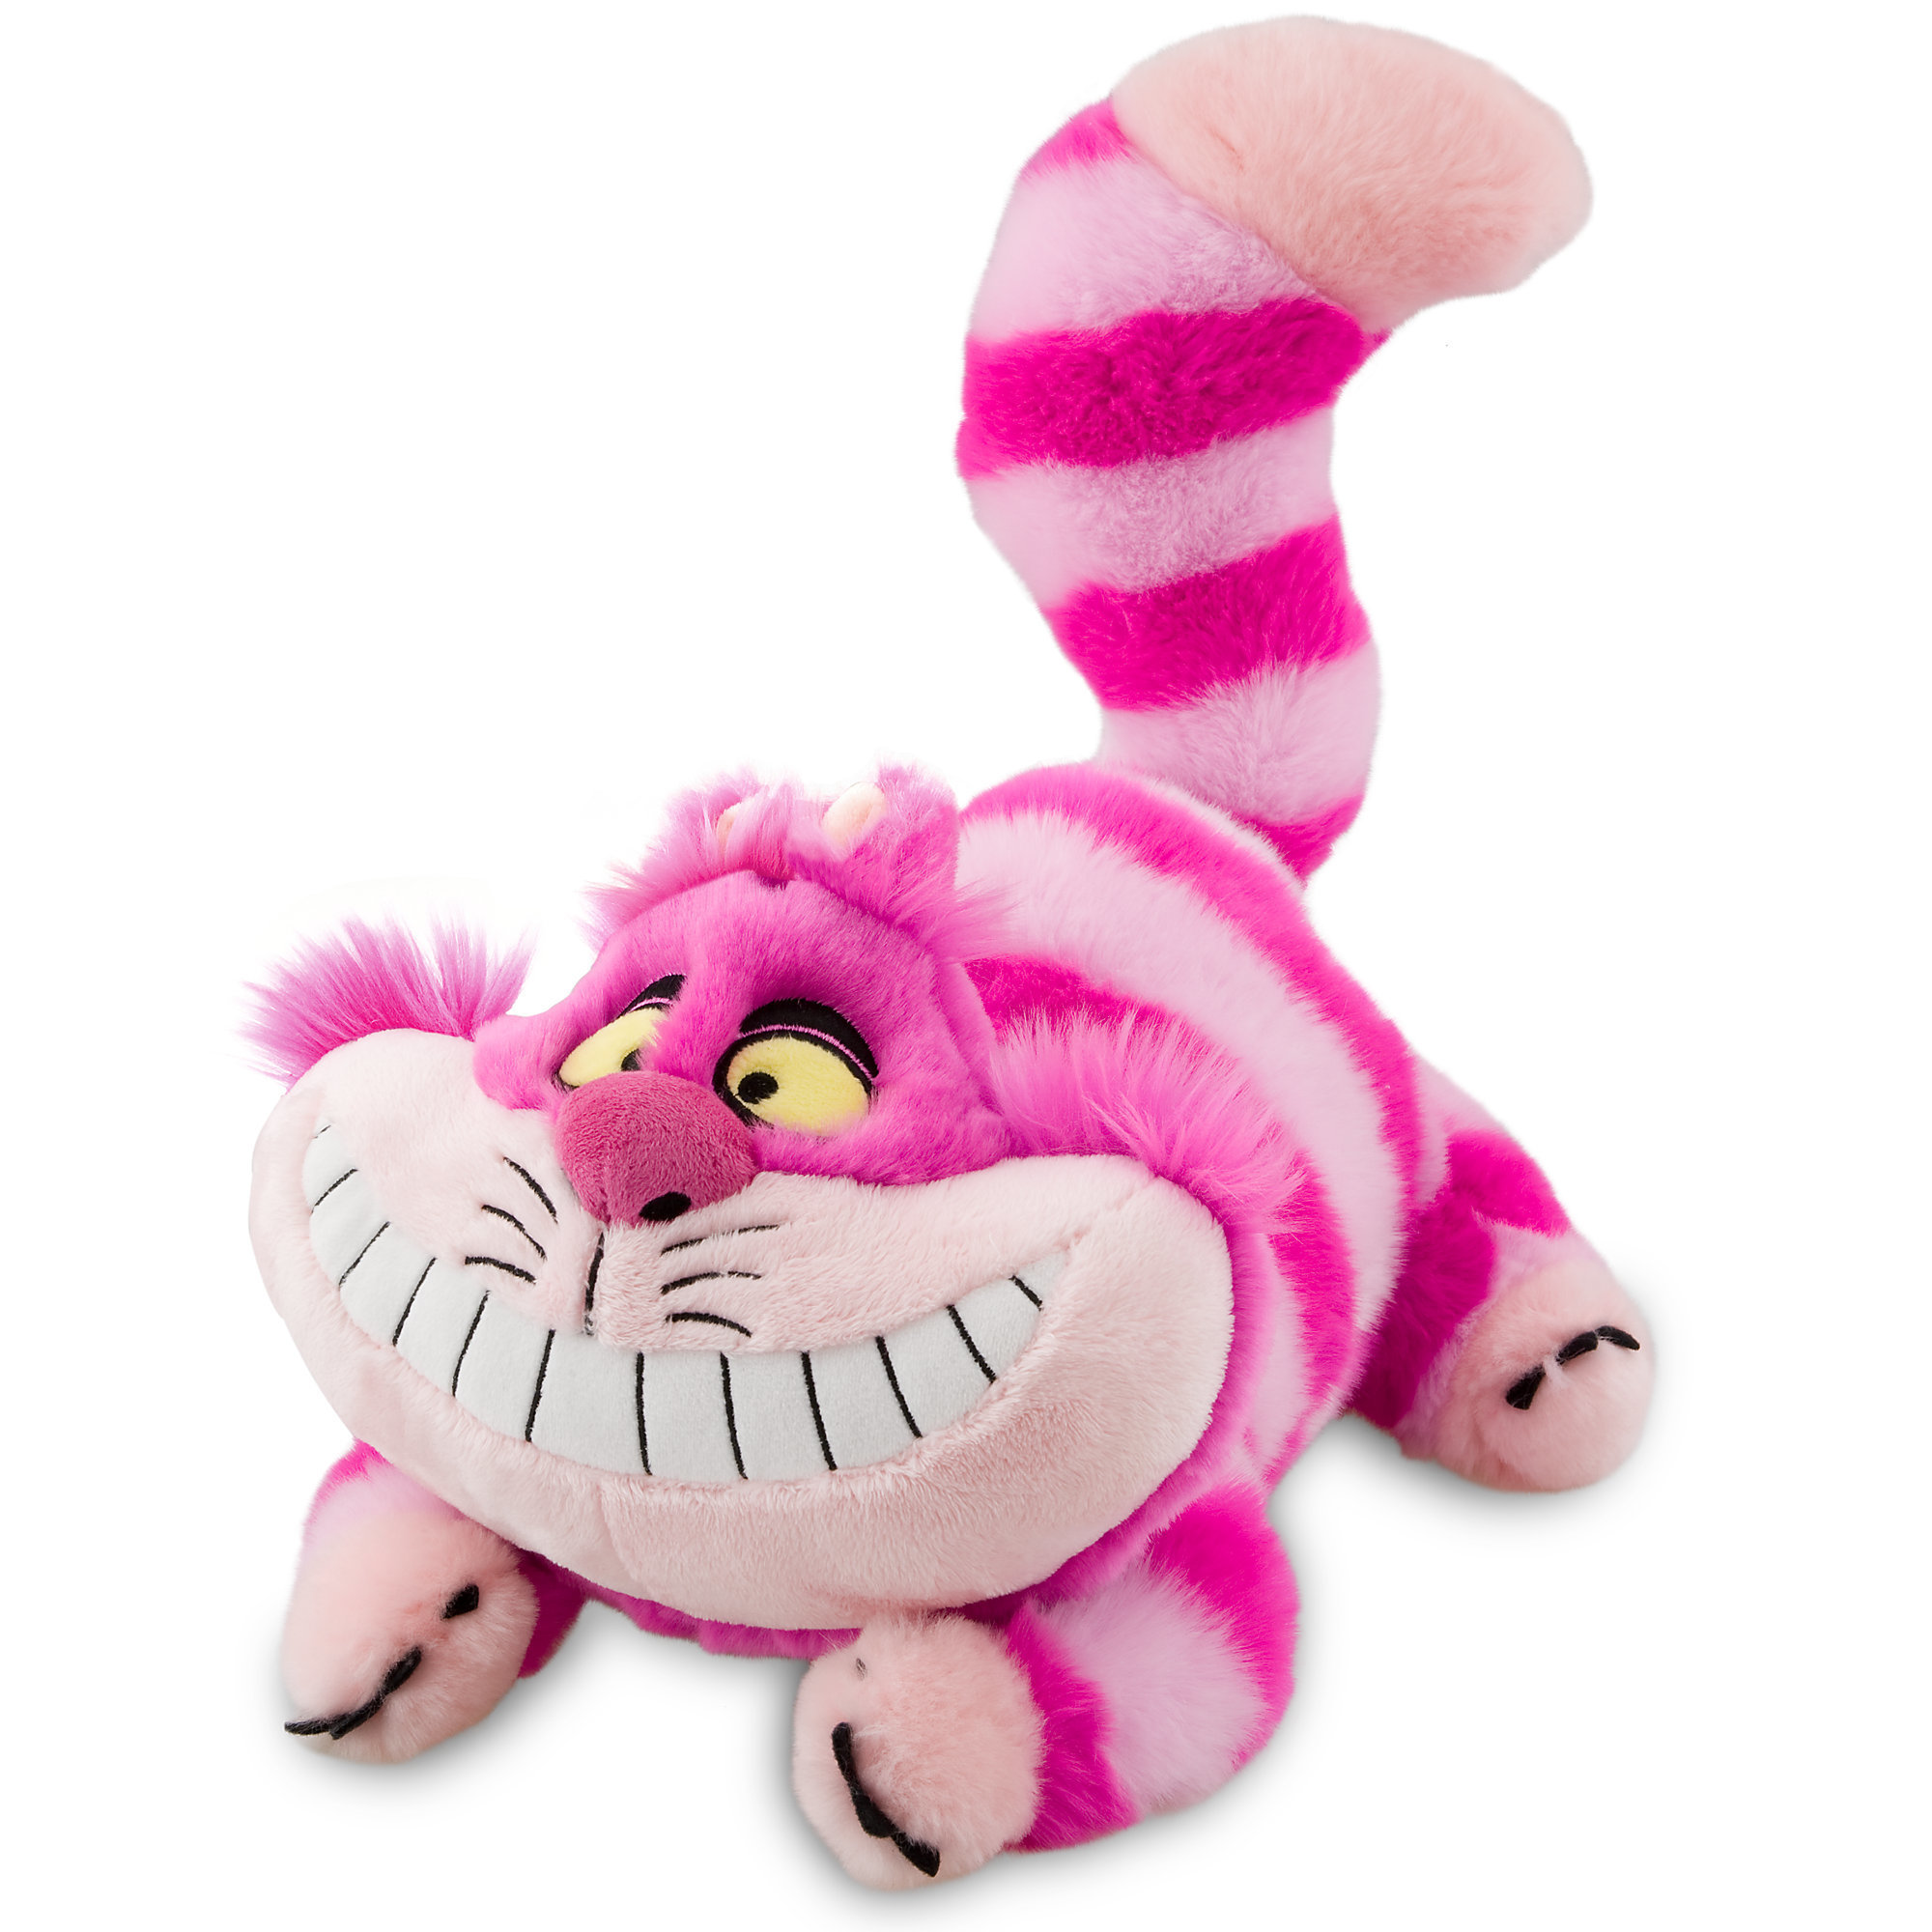 Alice in Wonderland's Cheshire Cat Large Plush Authentic Disney